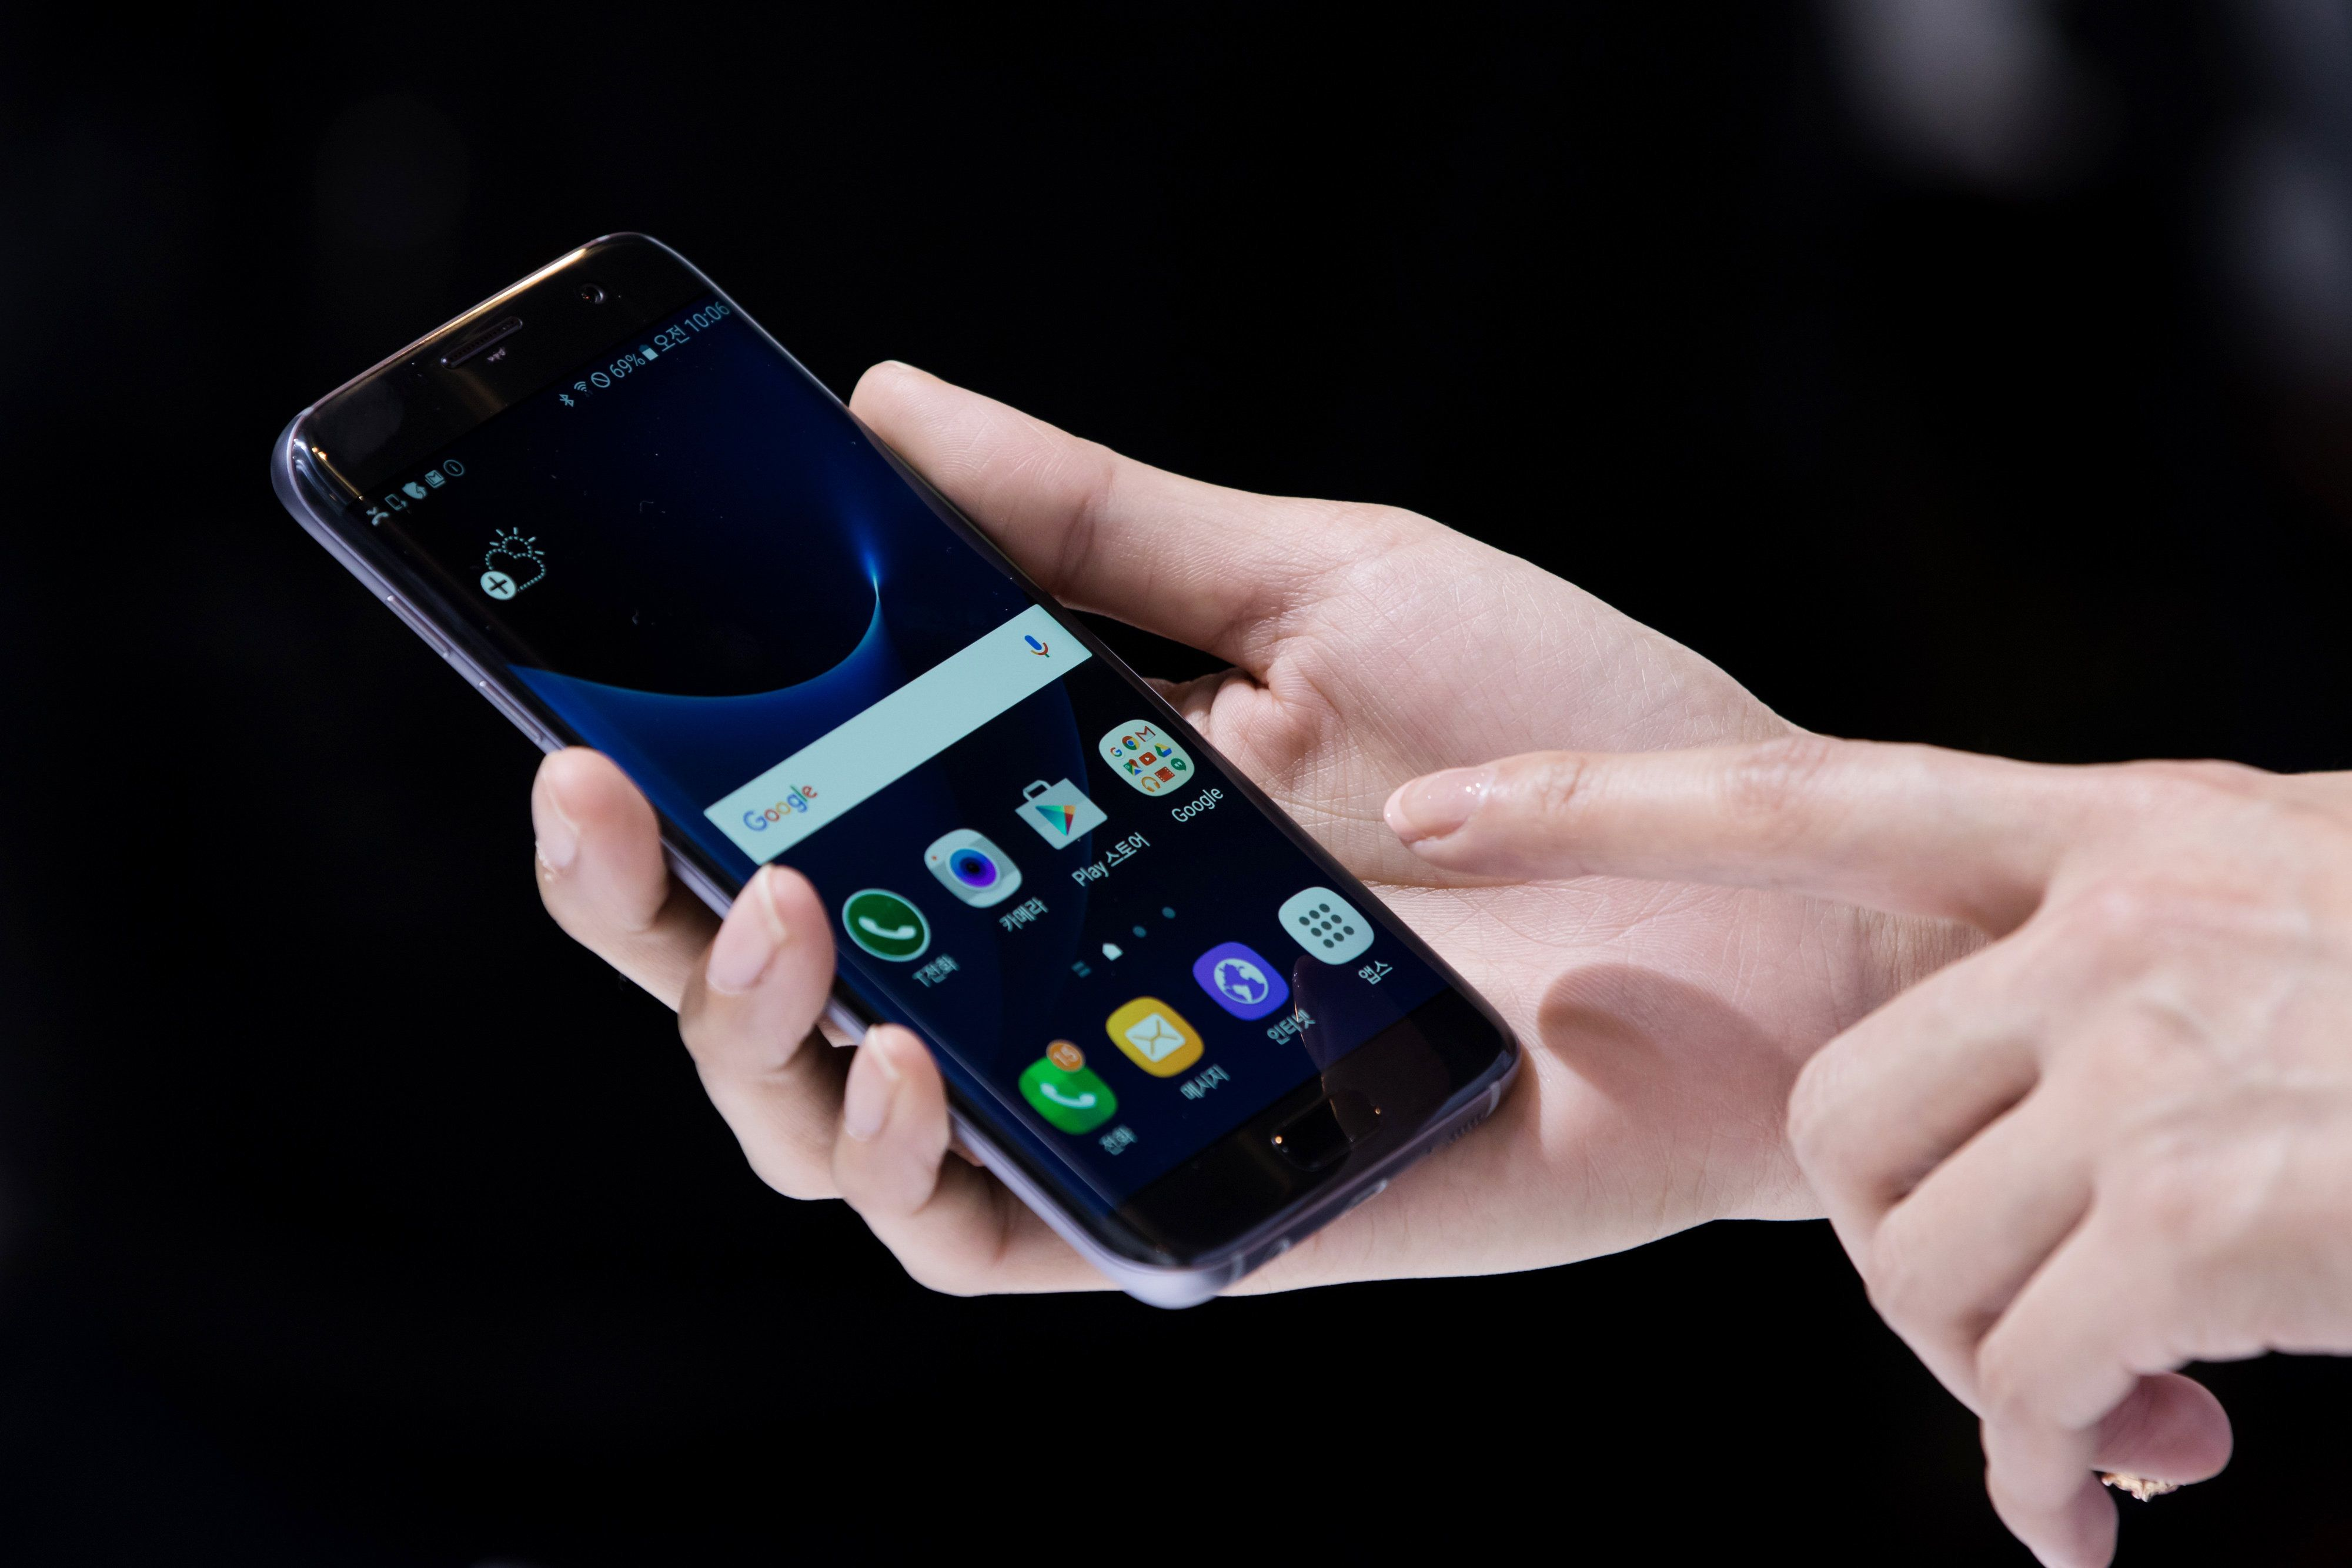 The Samsung Galaxy S7 Edge Might Be The Best Phone Available, But For How